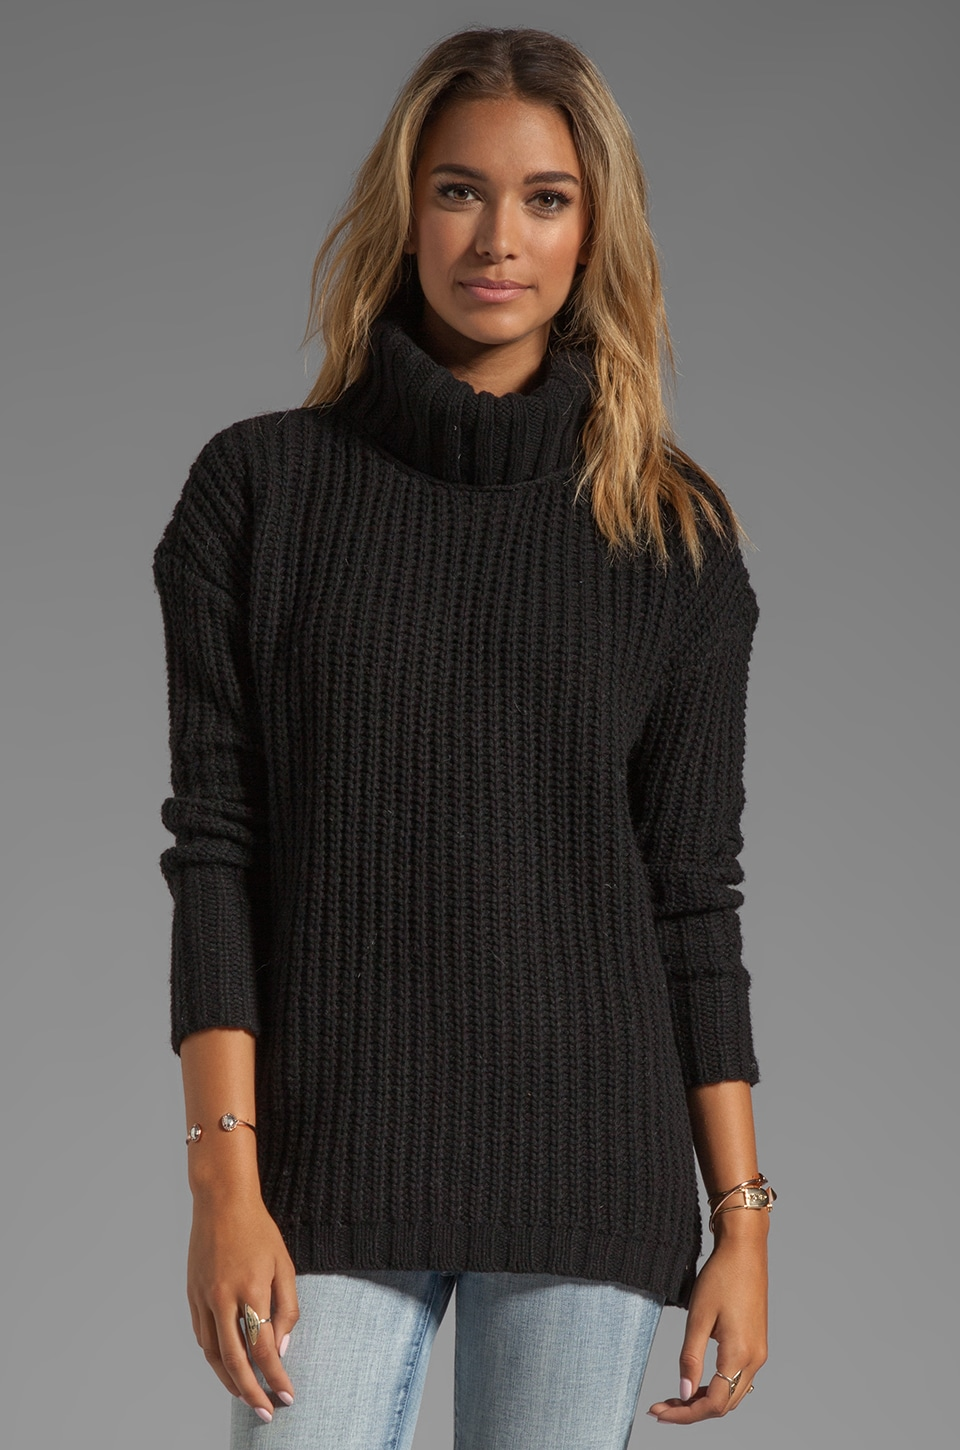 Soft Joie Alex Rib Sweater in Caviar